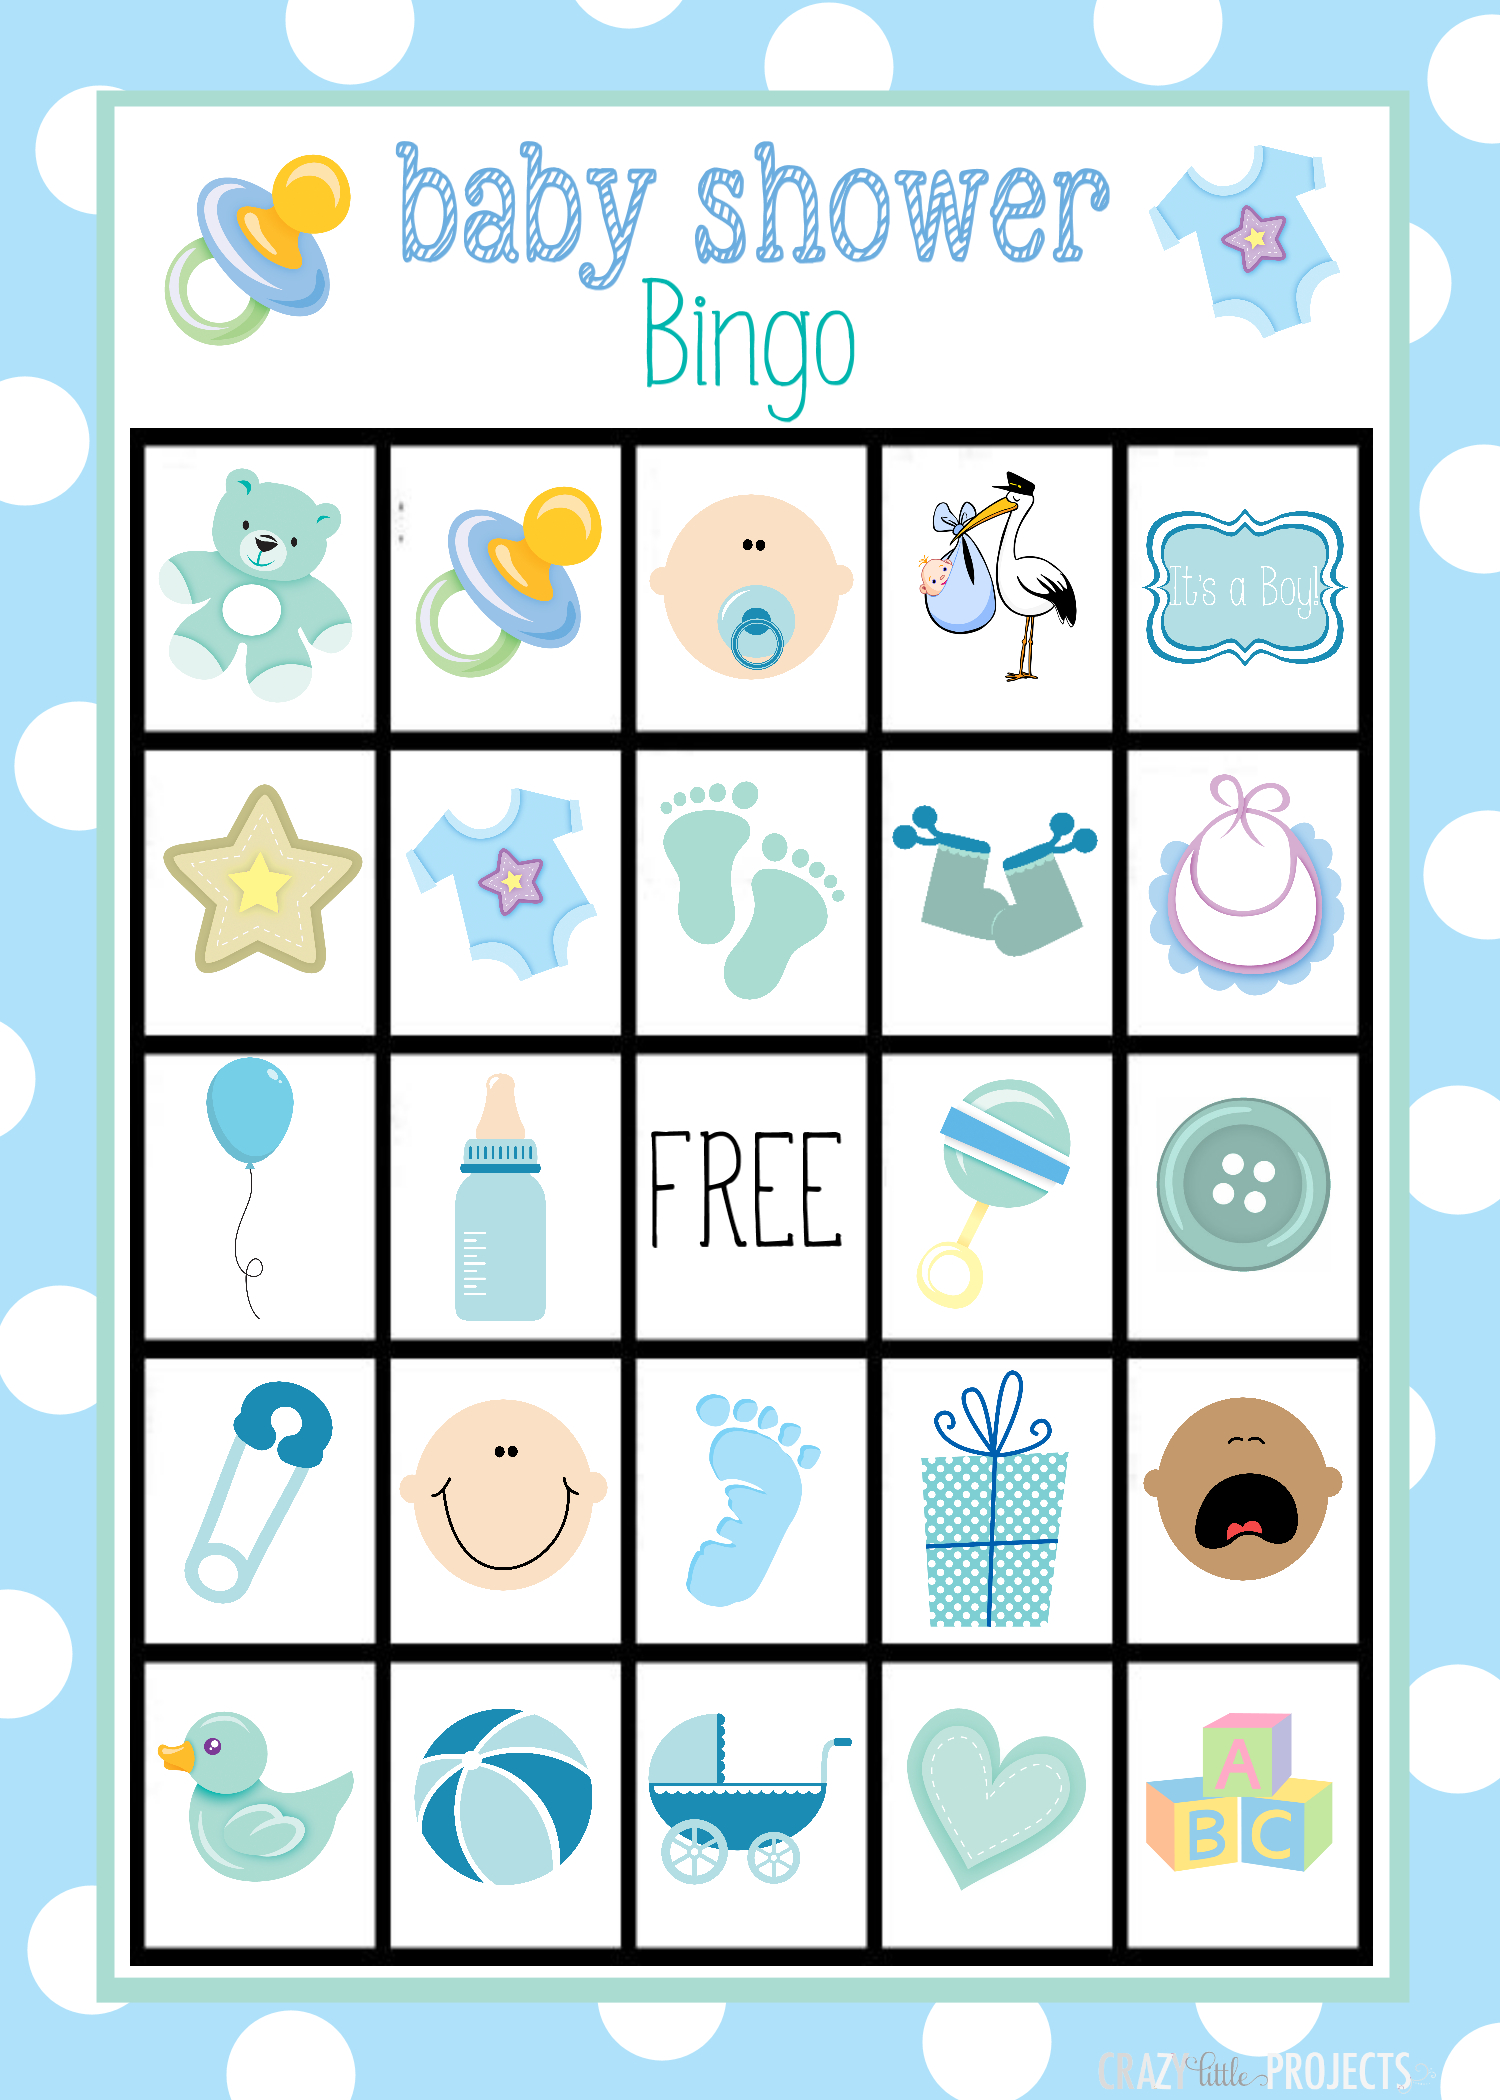 Baby Shower Bingo Cards - Free Printable Baby Boy Cards